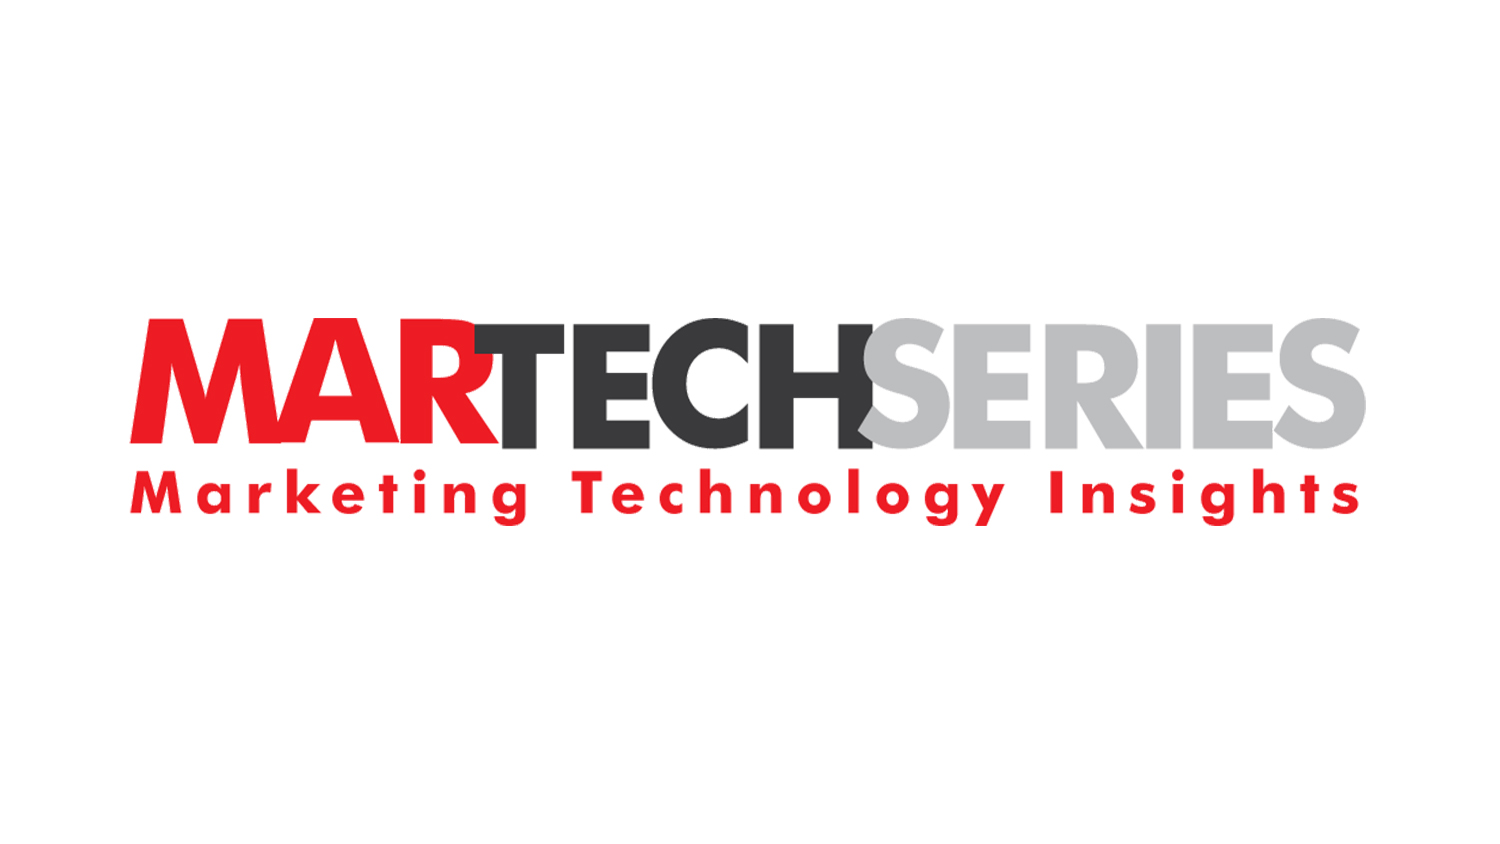 MarTech Video Interview with Chris Maccaro, CEO at Beachfront Media